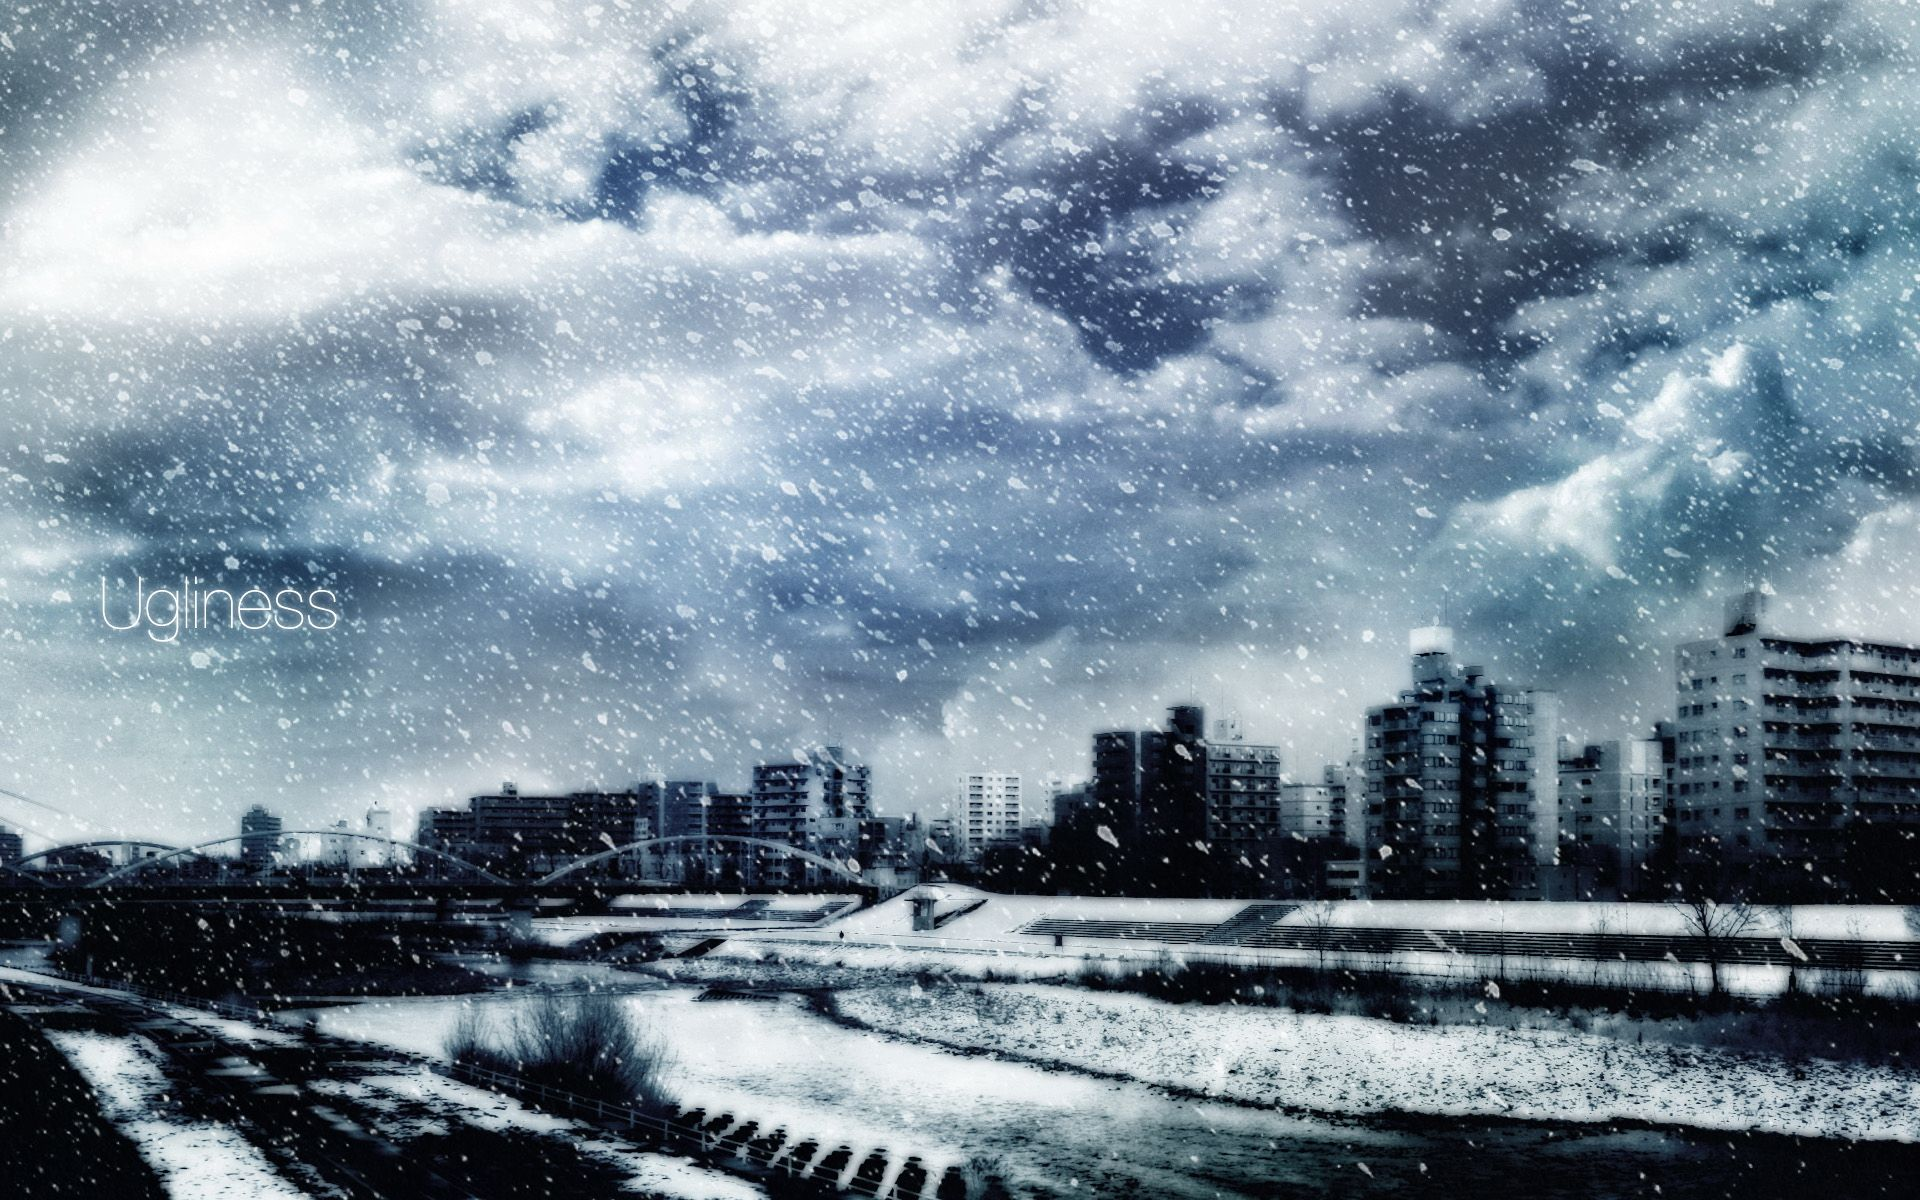 Grey City Heavy Clouds City Wallpaper Anime City Live Wallpapers